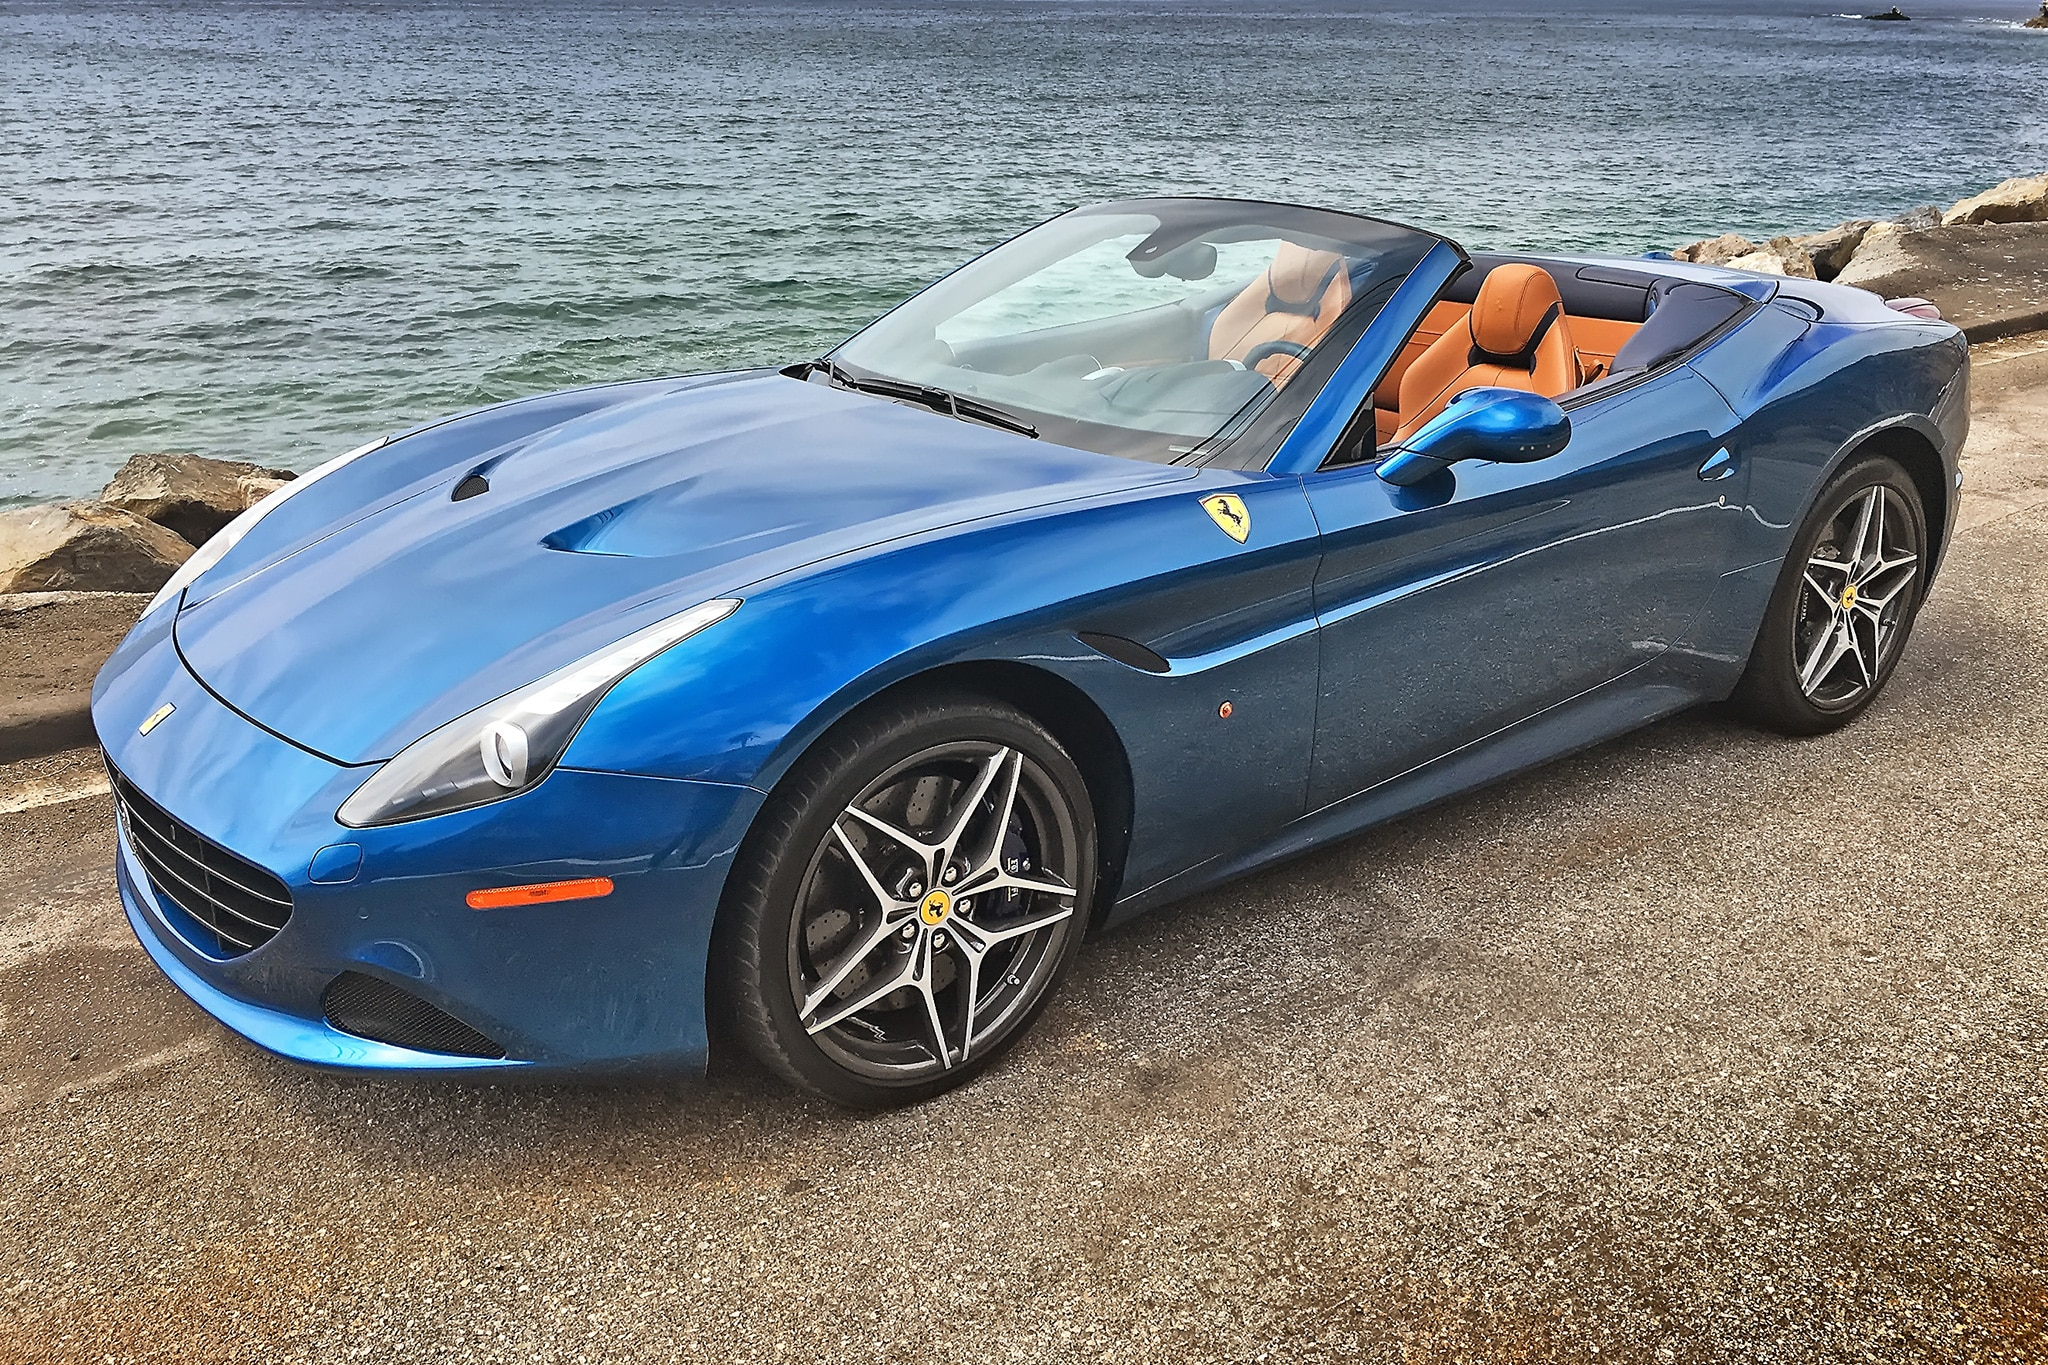 One Weekend With: 2016 Ferrari California T | Automobile Magazine